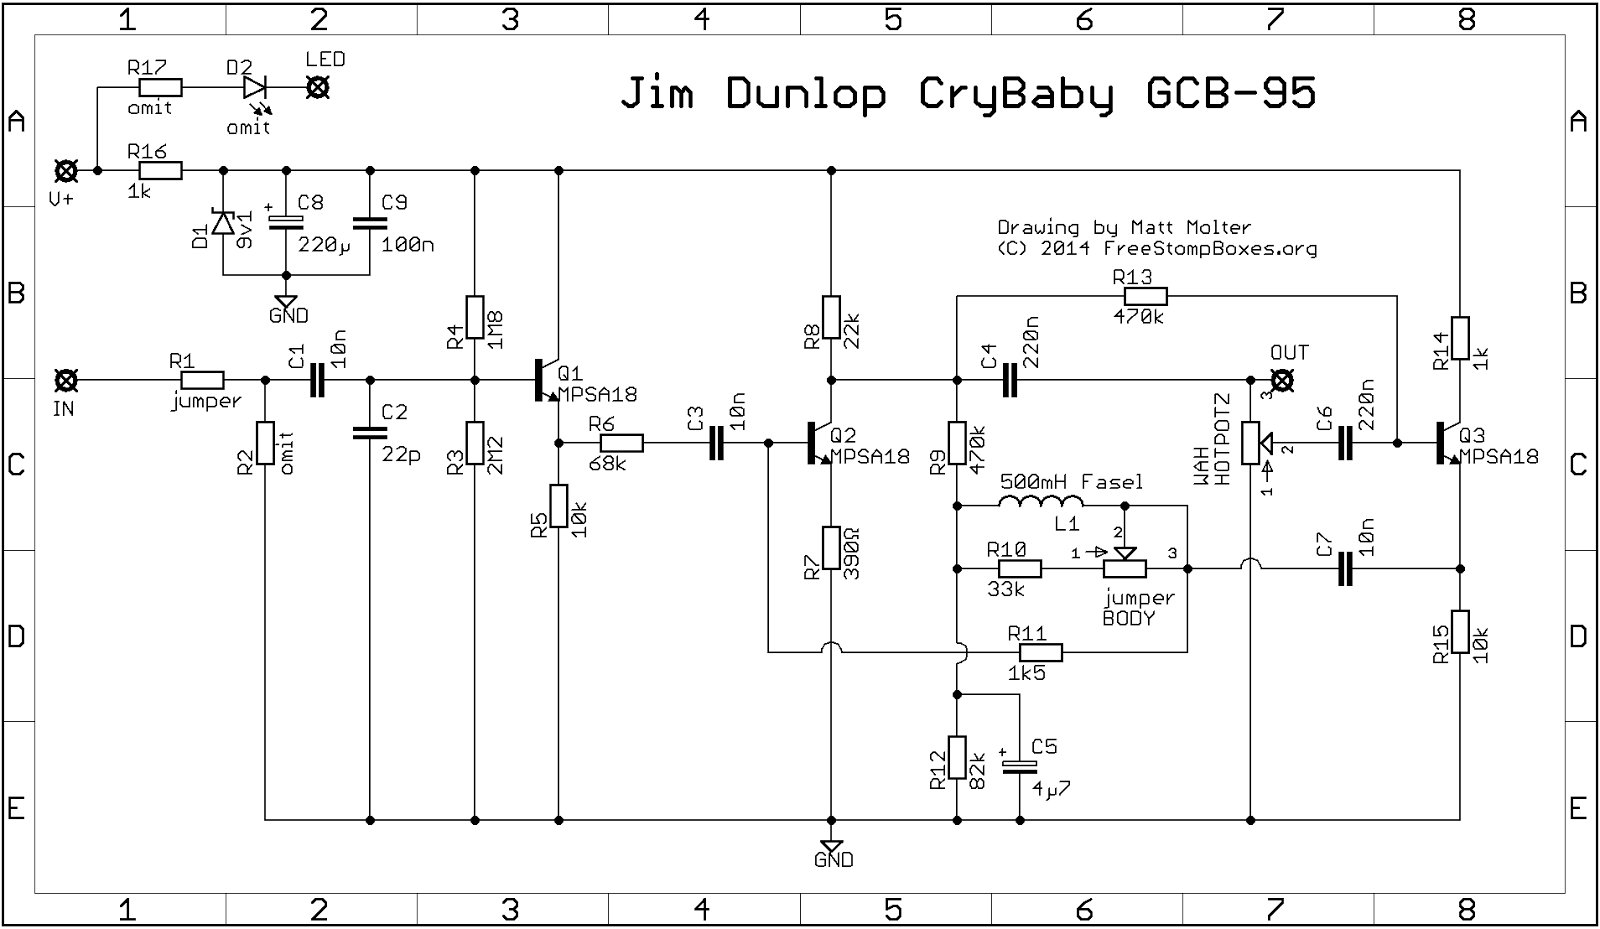 Crybaby%2BGCB 95 guitar fx layouts jim dunlop crybaby gcb 95 crybaby gcb-95 wiring diagram at nearapp.co